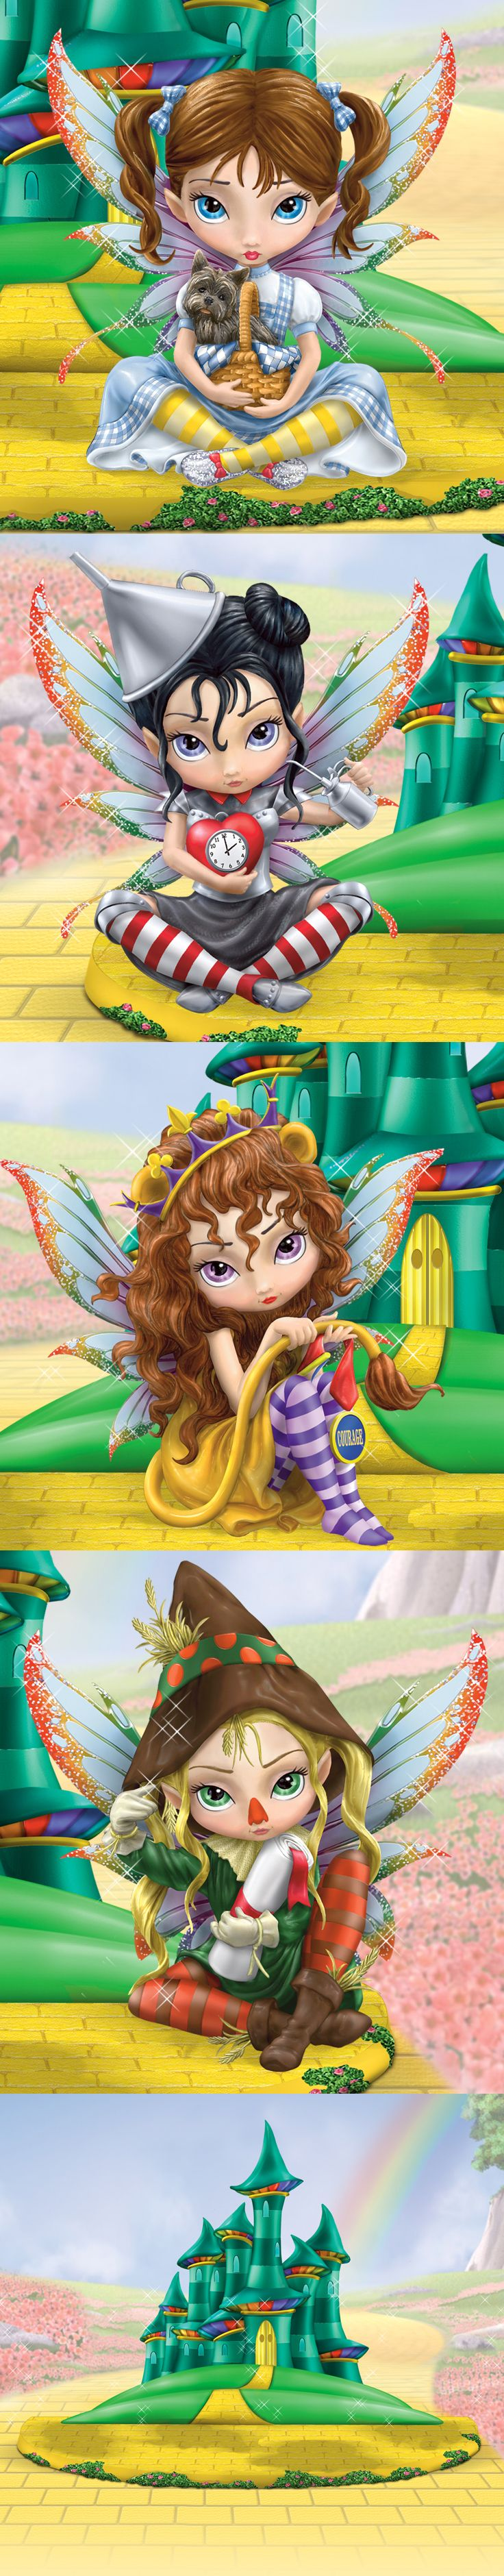 4 winged fairies, including Dorothy and Tin Girl, by renowned artist Jasmine Becket-Griffith, display of Yellow Brick Road leading to Emerald City.